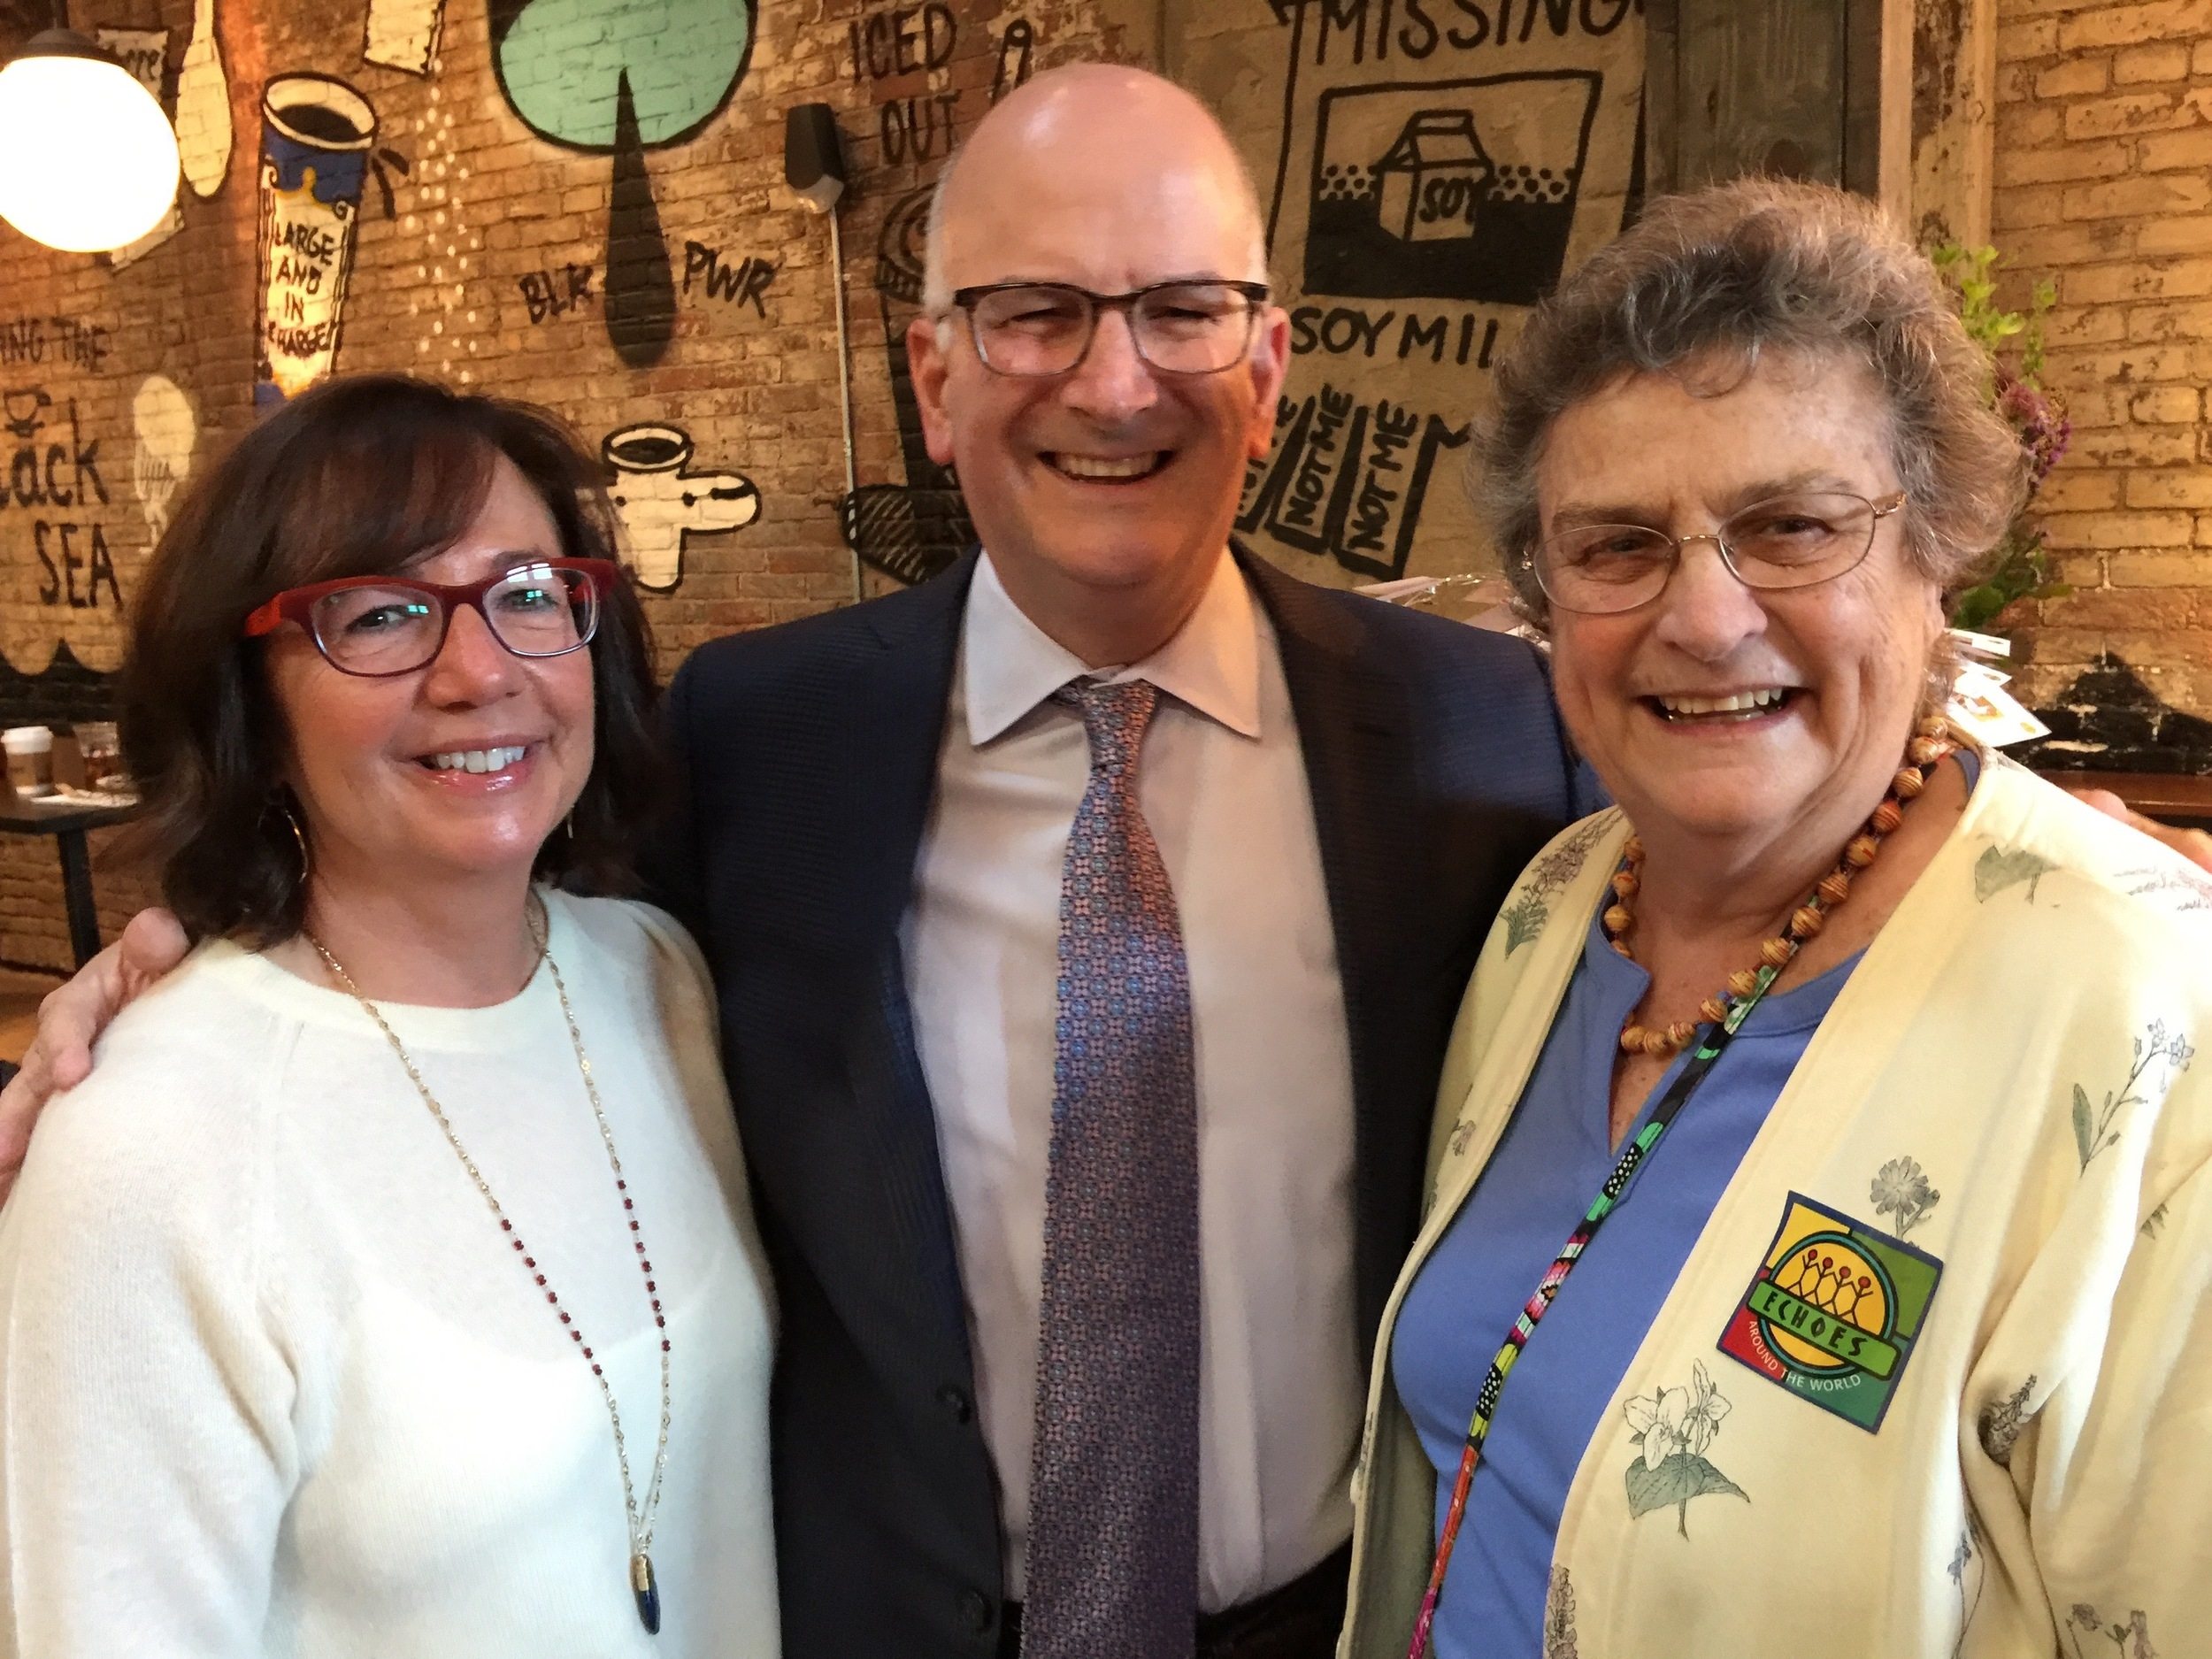 Congratulations to our 2015 Call to Care Honoree Kevin Mahoney, shown here with his wife, Pam, and ECHOES co-founder Nereida Gordon.